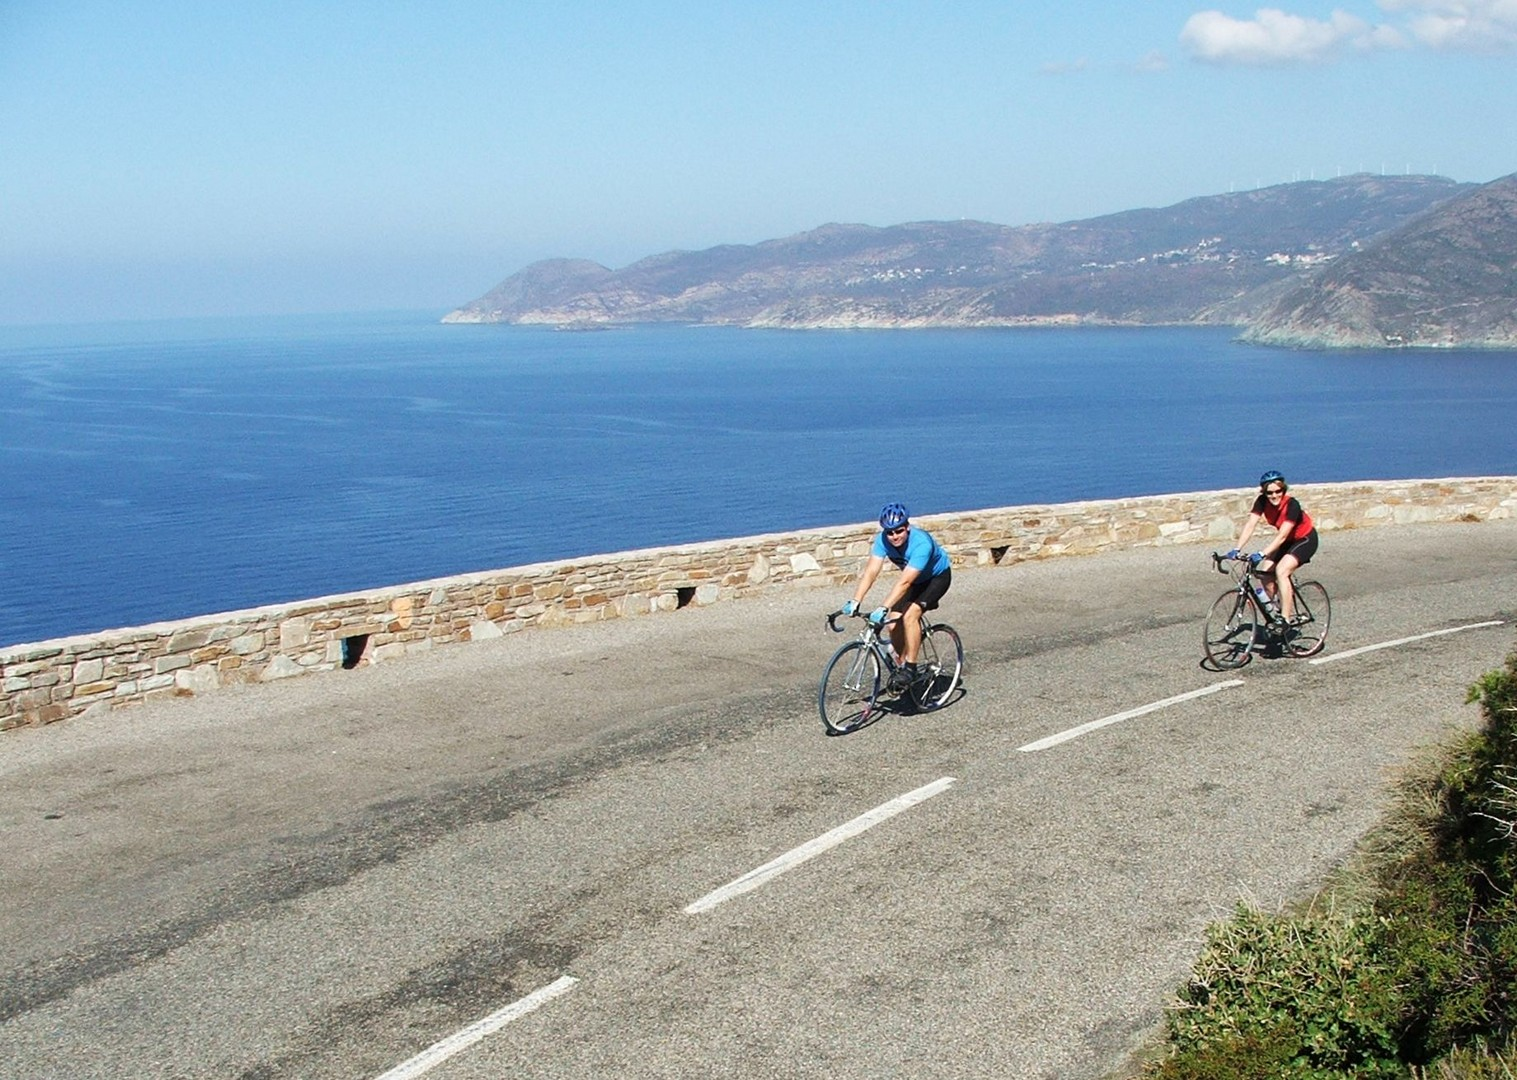 Castagniccia-guided-road-cycling-holiday-the-beautiful-isle-france-corsica.jpg - France - Corsica - The Beautiful Isle - Guided Road Cycling Holiday - Road Cycling